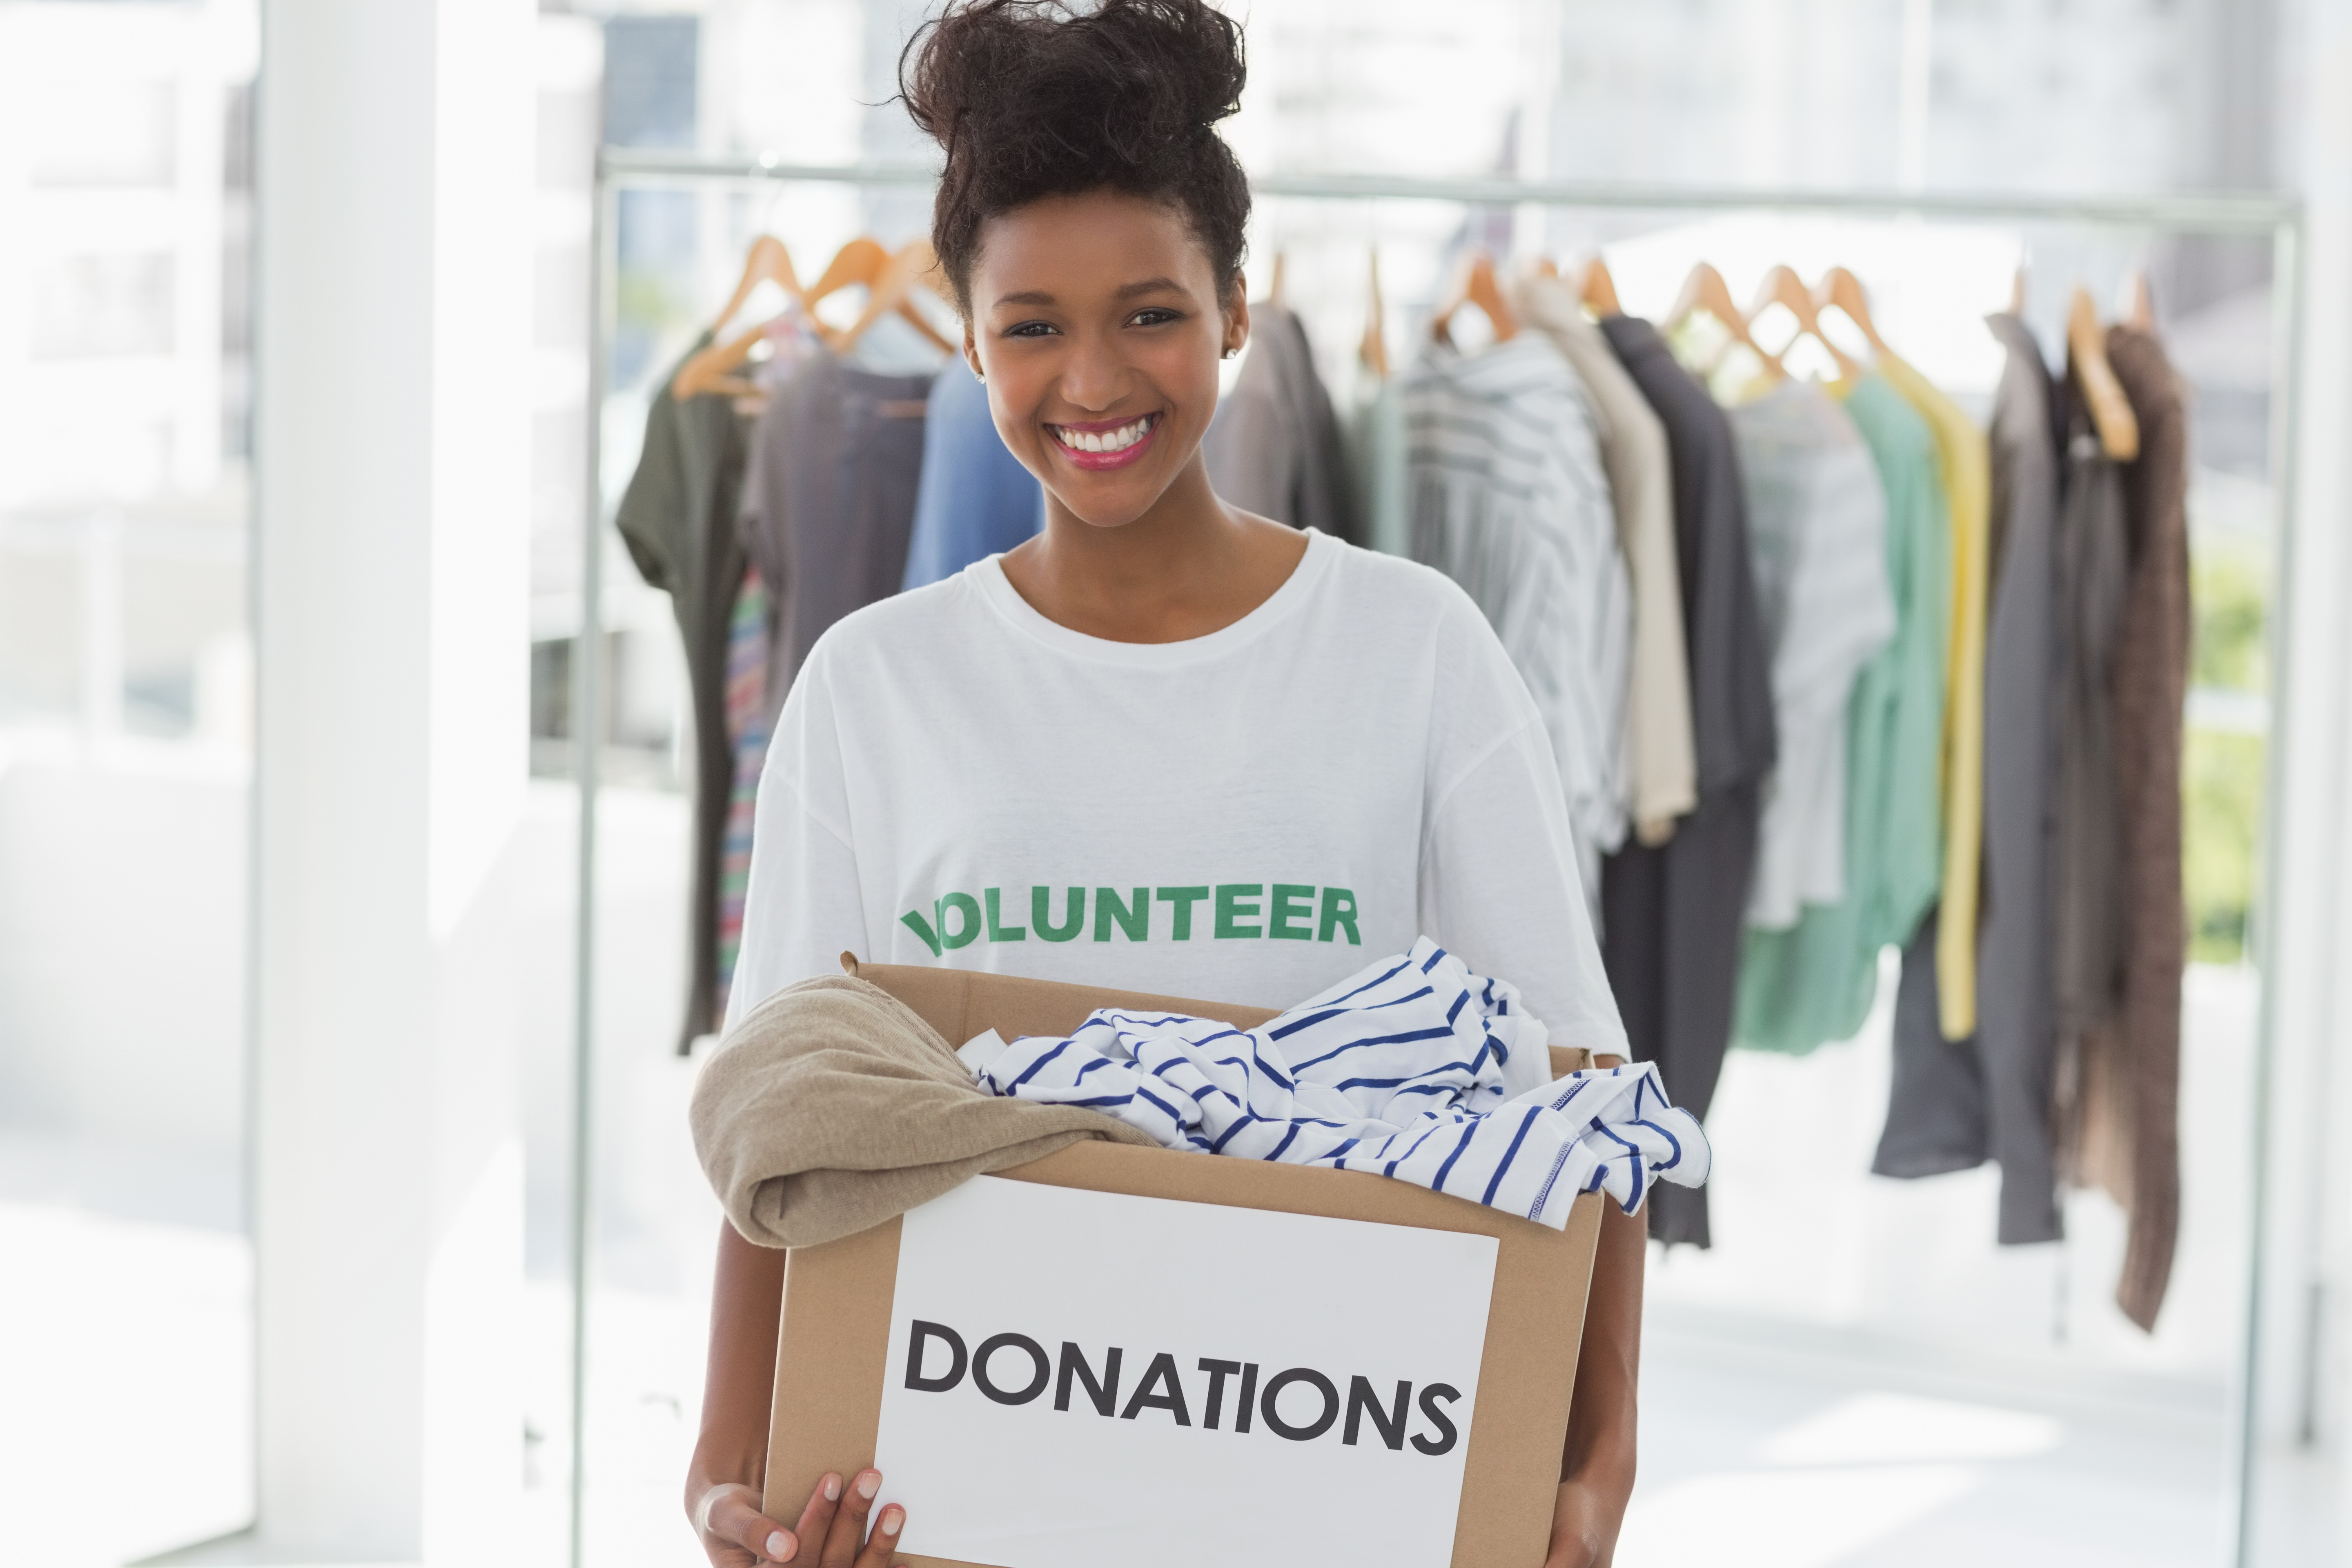 How to get rid of clutter smart storage for Shirts that donate to charity